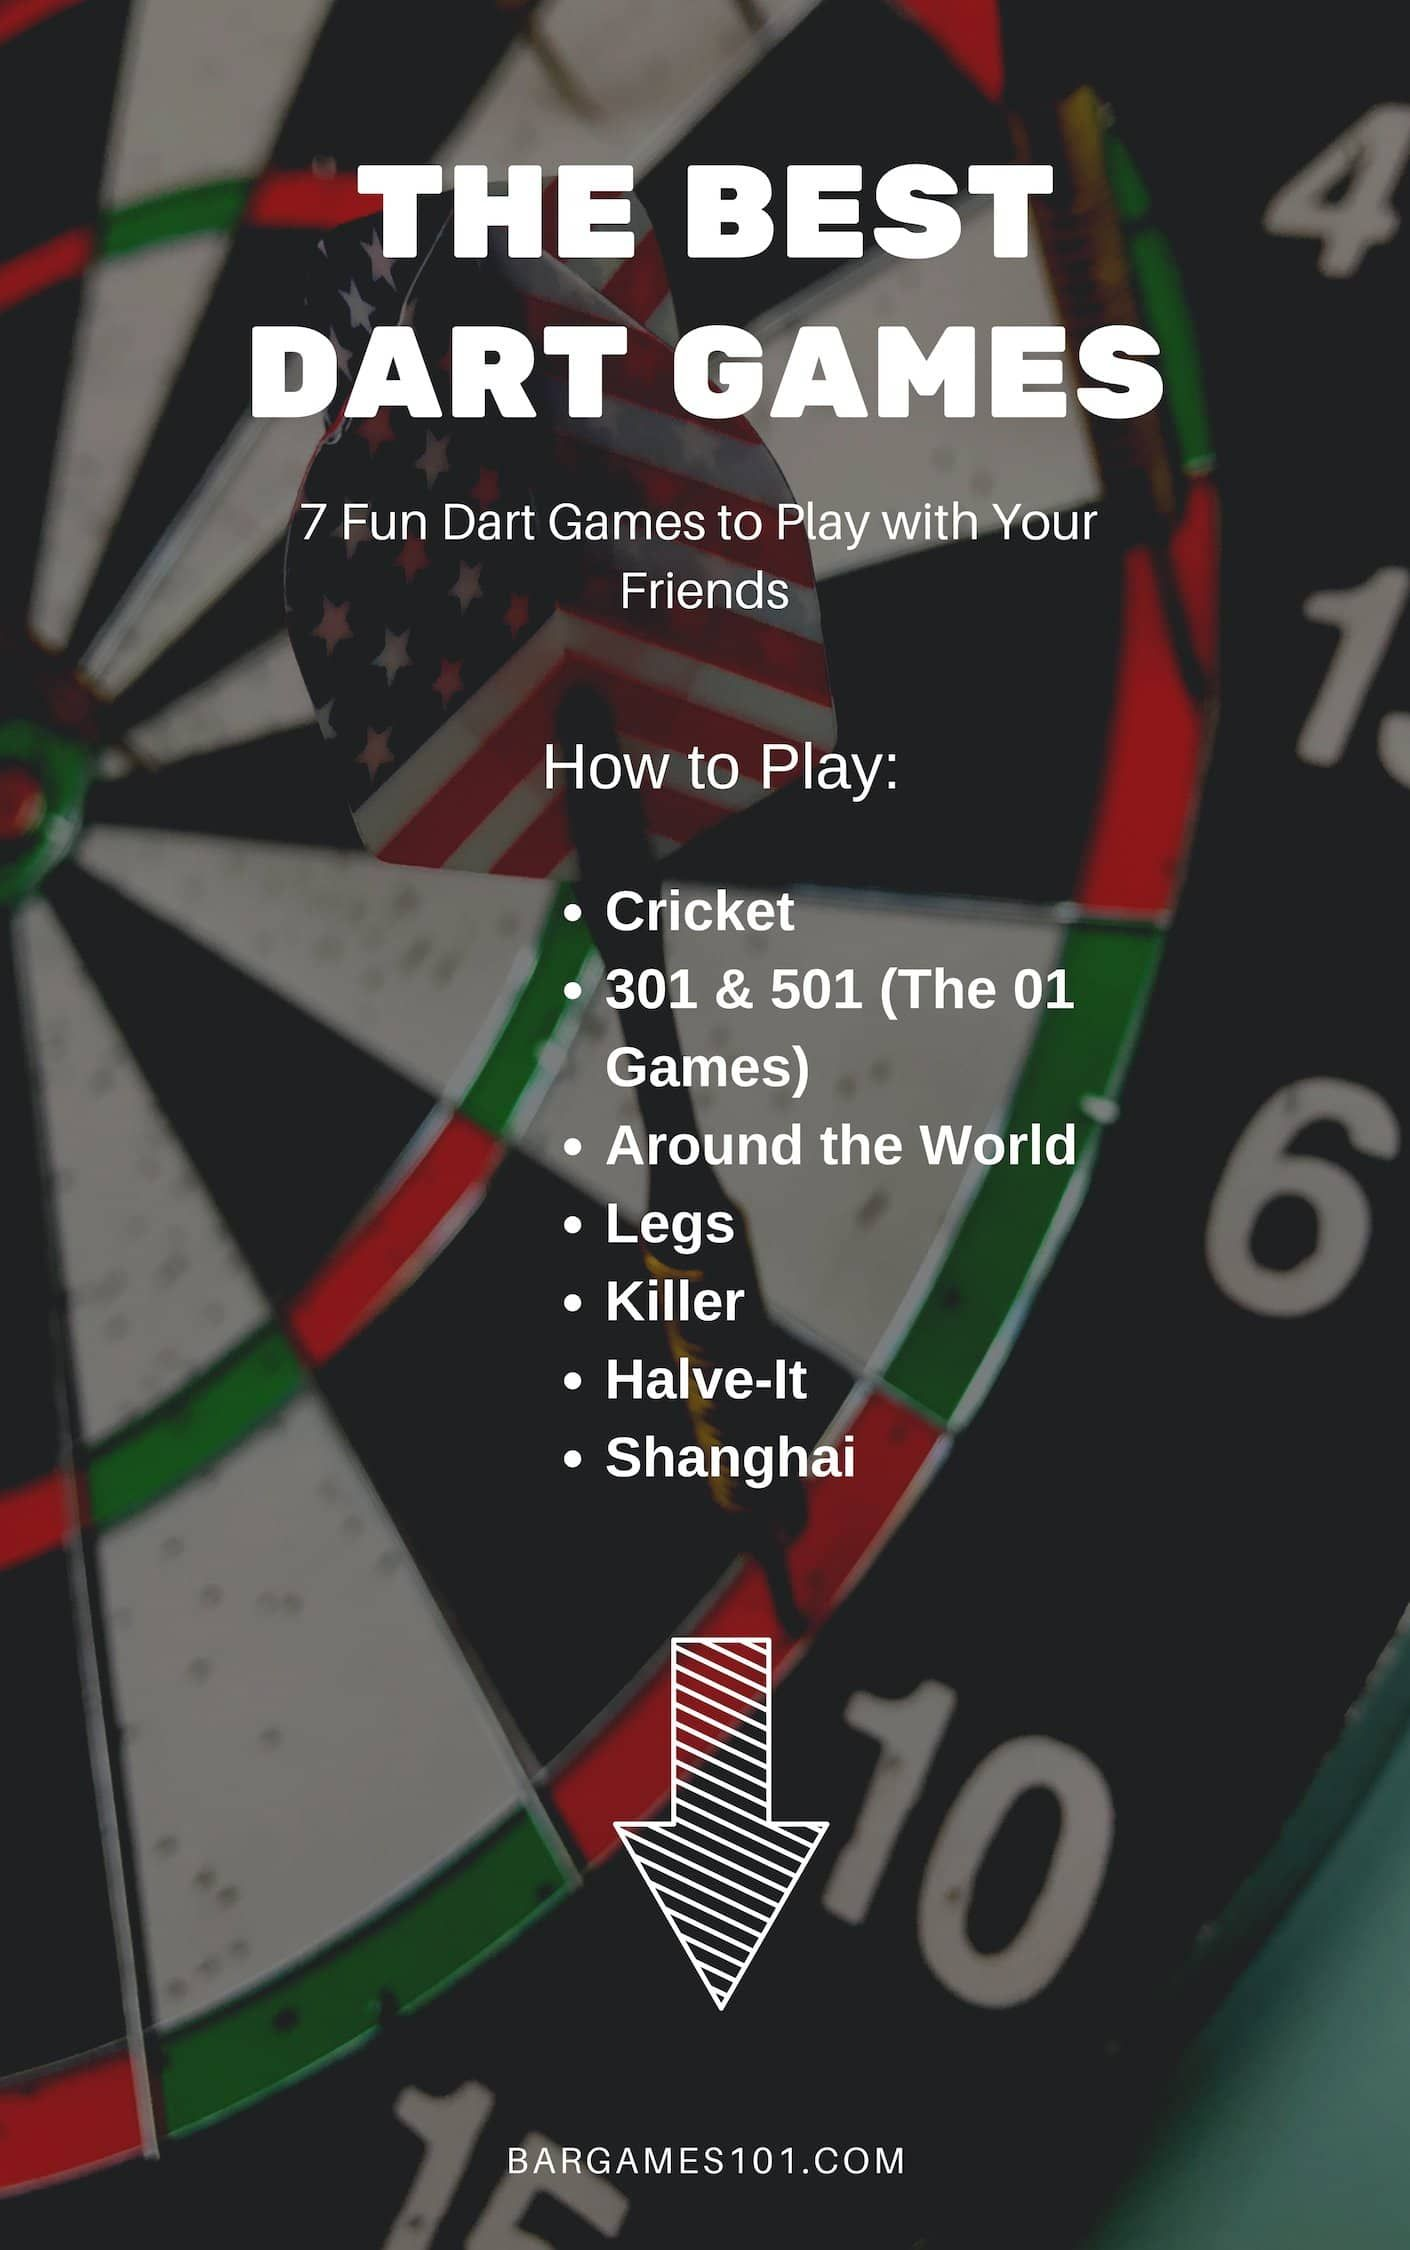 10 Best Dart Games Fun and Popular Games for All Skill